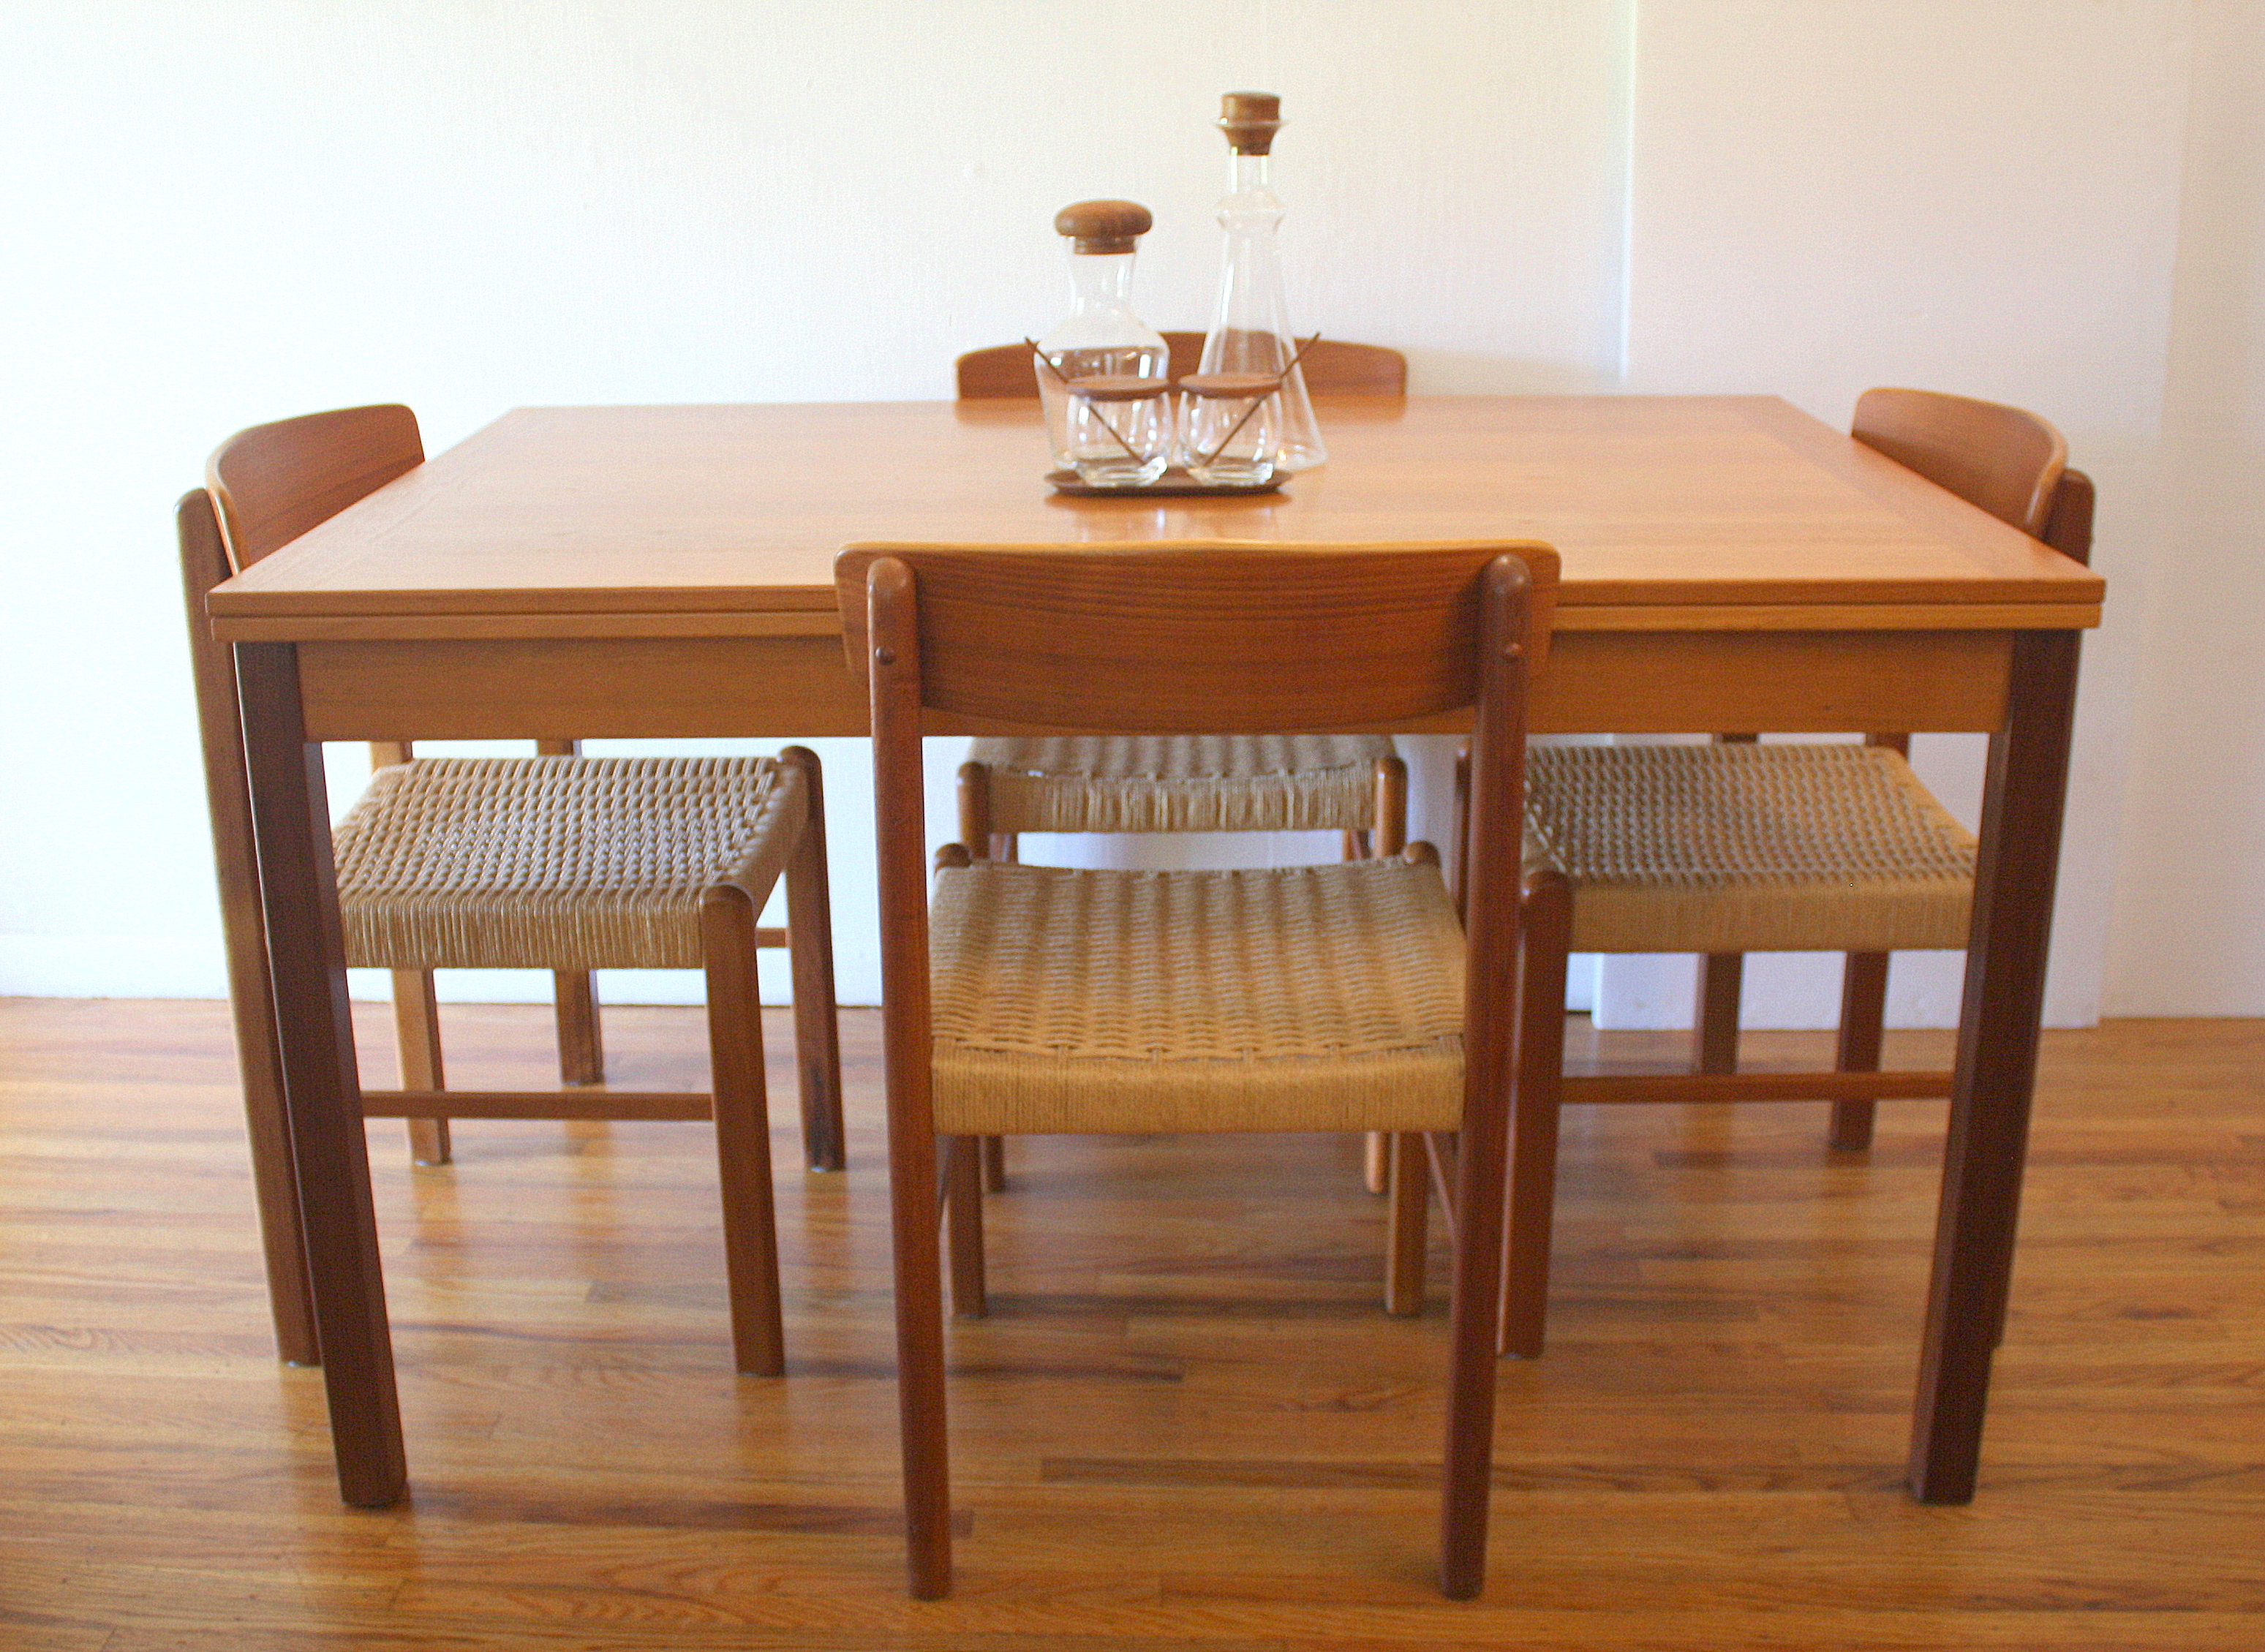 tall dining table and chairs dimensions round high top mid century modern danish teak refractory by mobler rush seat | picked ...